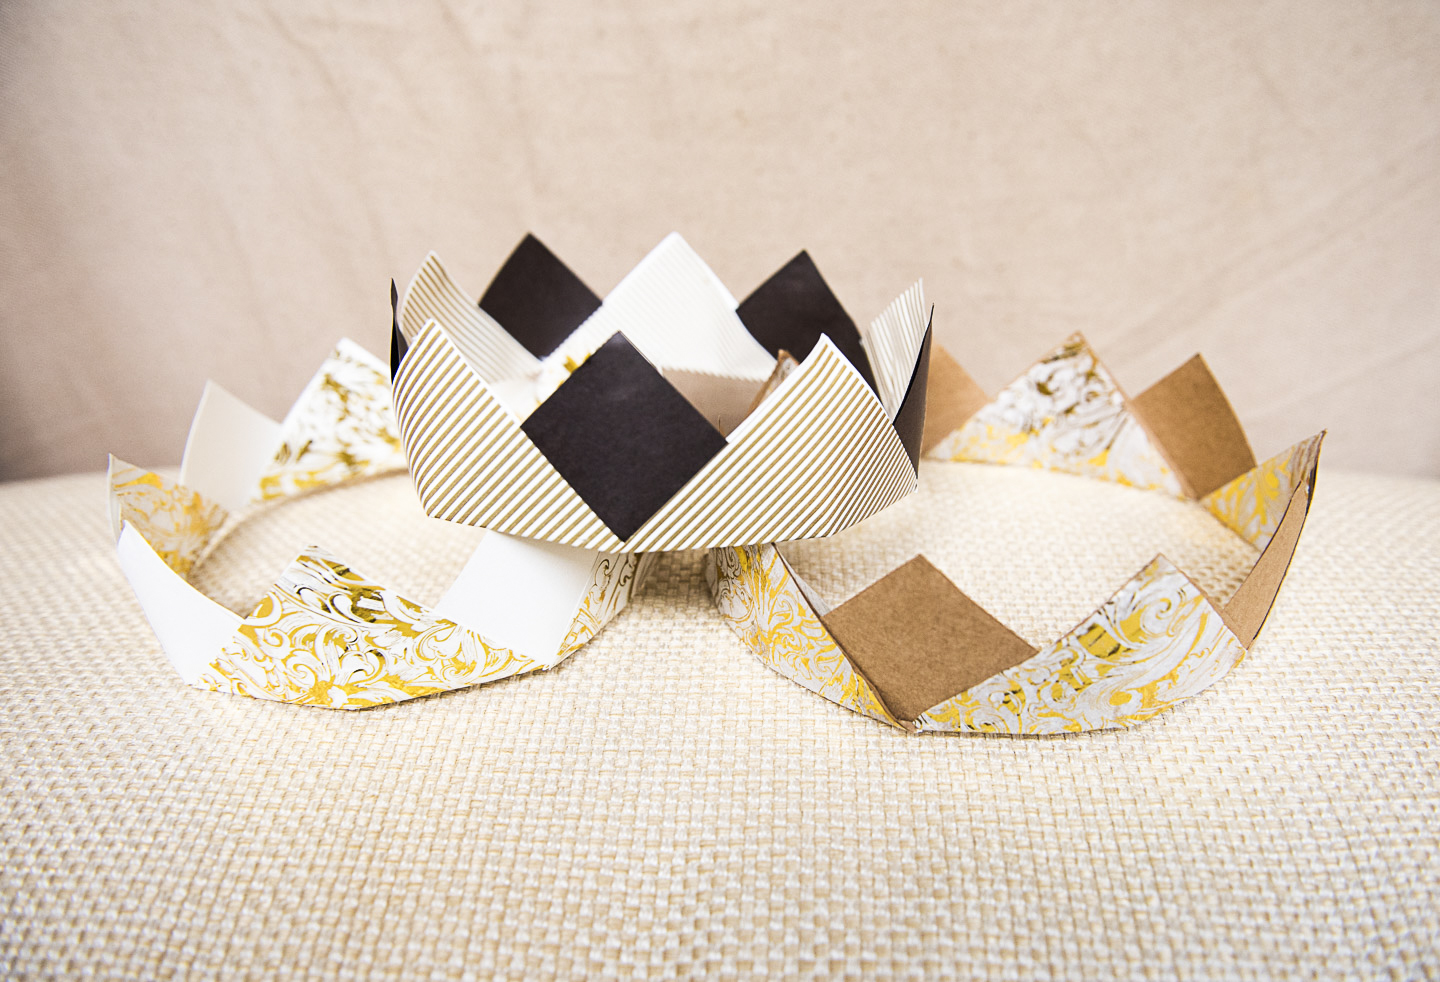 3 Diy Paper Crowns From Upcycled Wrapping Paper Compost